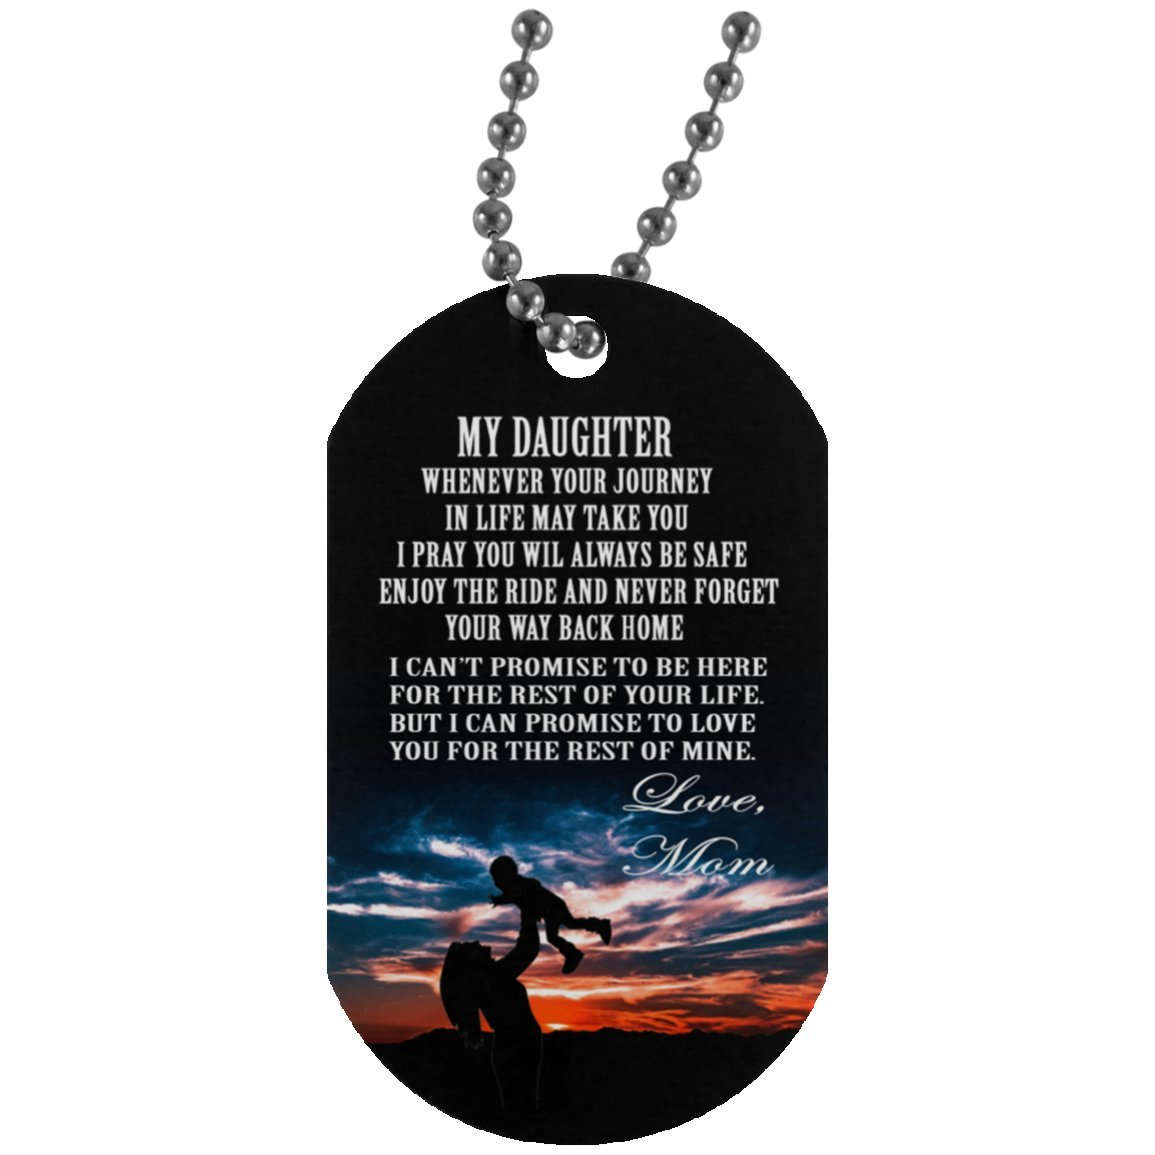 Mom to Daughter Dog tag Necklace -personalized Daughter necklace - Anniversary Gifts from Dad for teen Girls, Military inspired aluminum dog tag